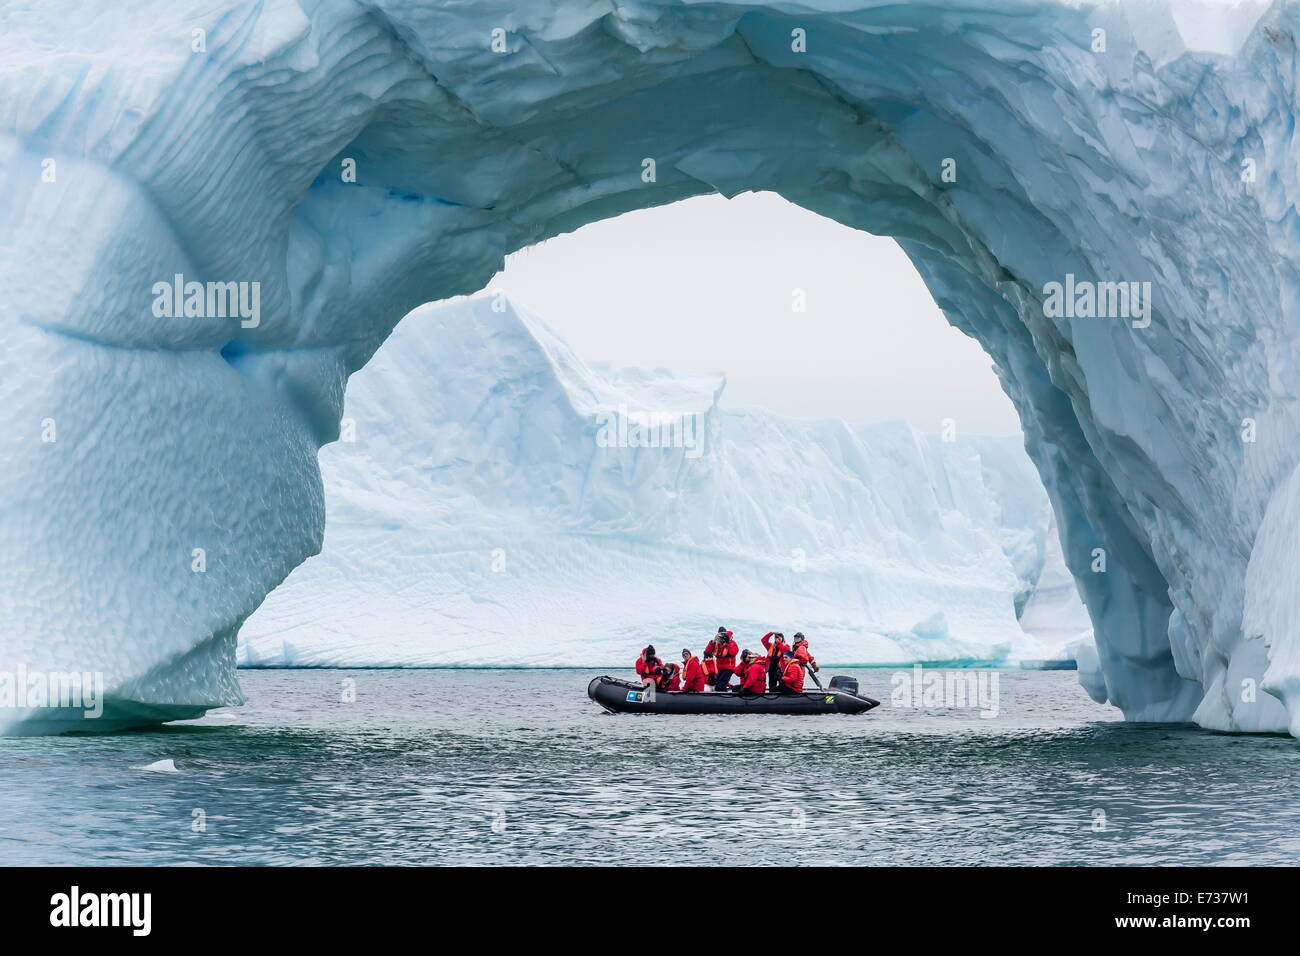 Lindblad guests from the National Geographic Explorer on a Zodiac cruise in Cierva Cove, Antarctica, Polar Regions - Stock Image